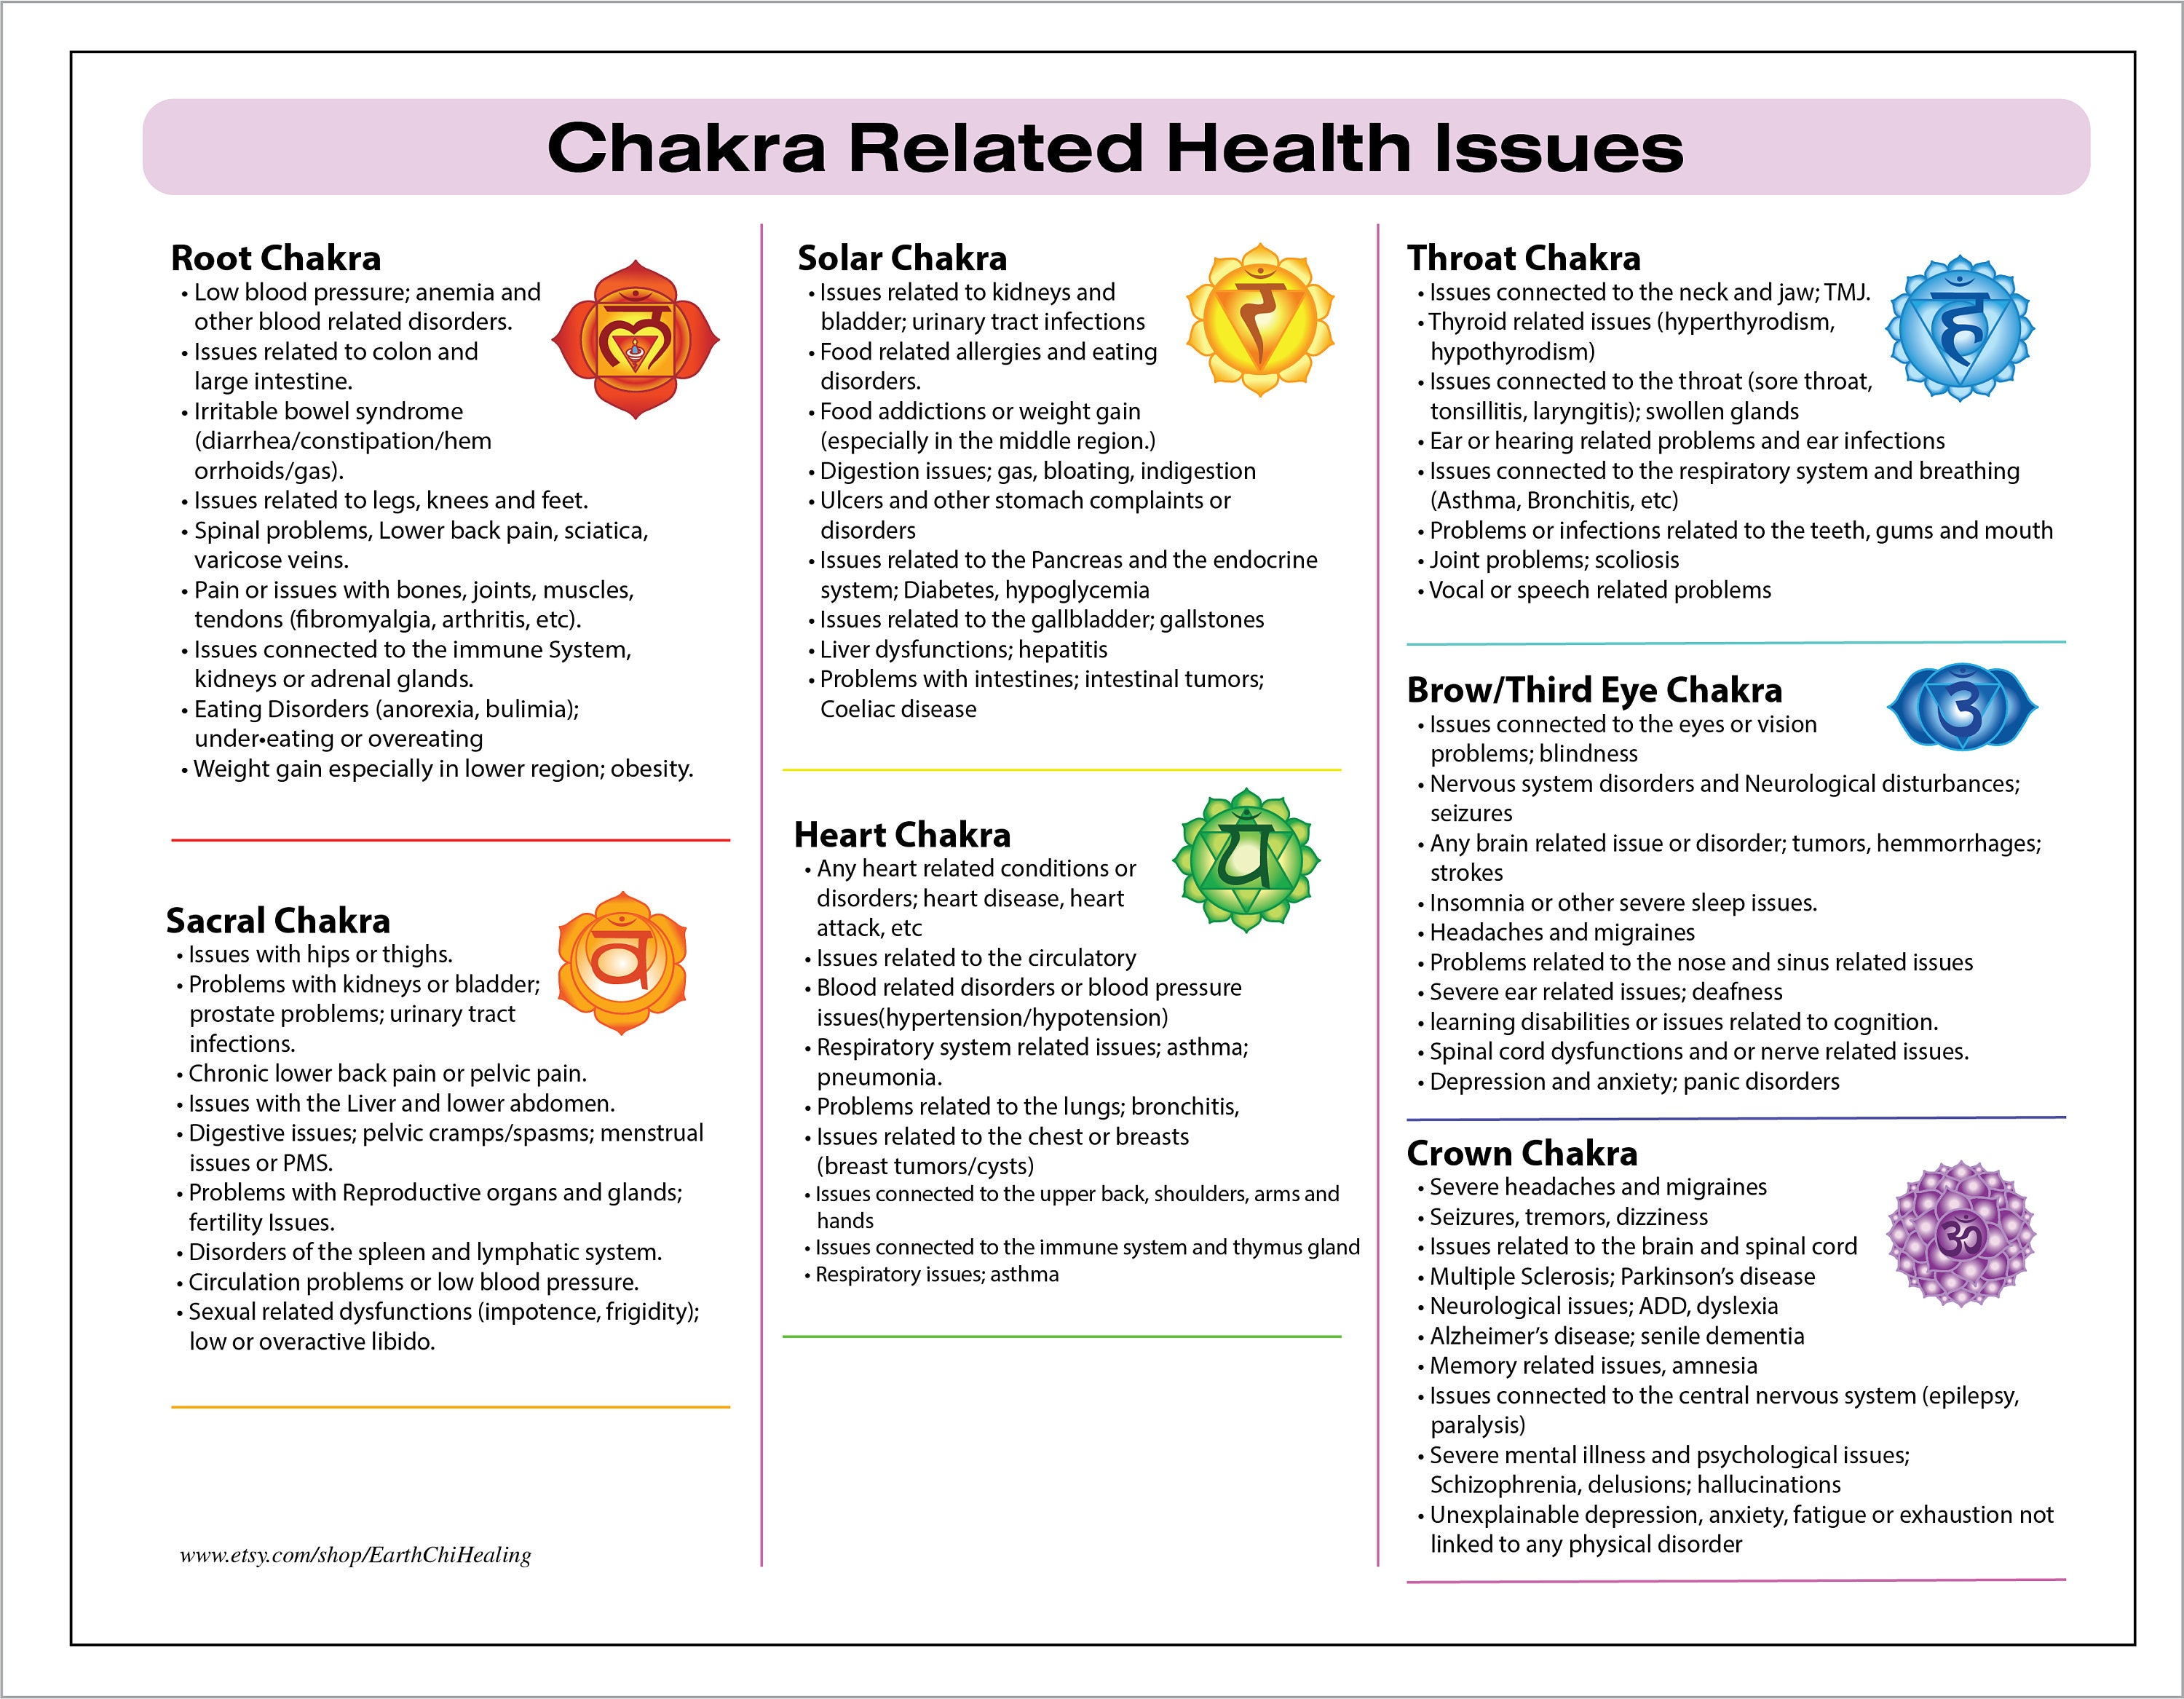 Chakra related health issues printable chart illustrated zoom geenschuldenfo Choice Image